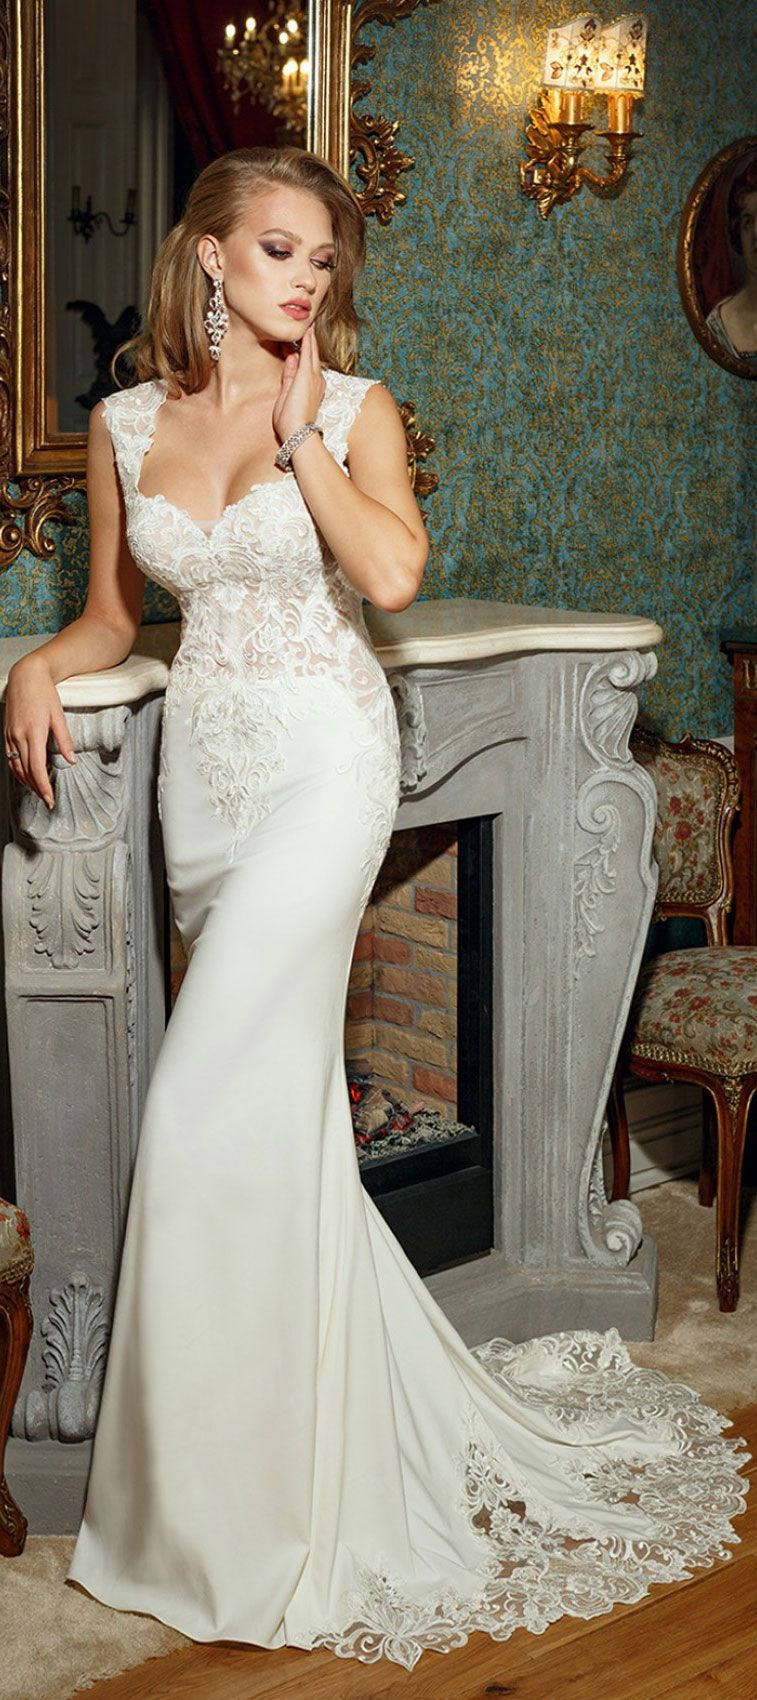 "Bien Savy ""Let Me Love You"" Bridal Collection"